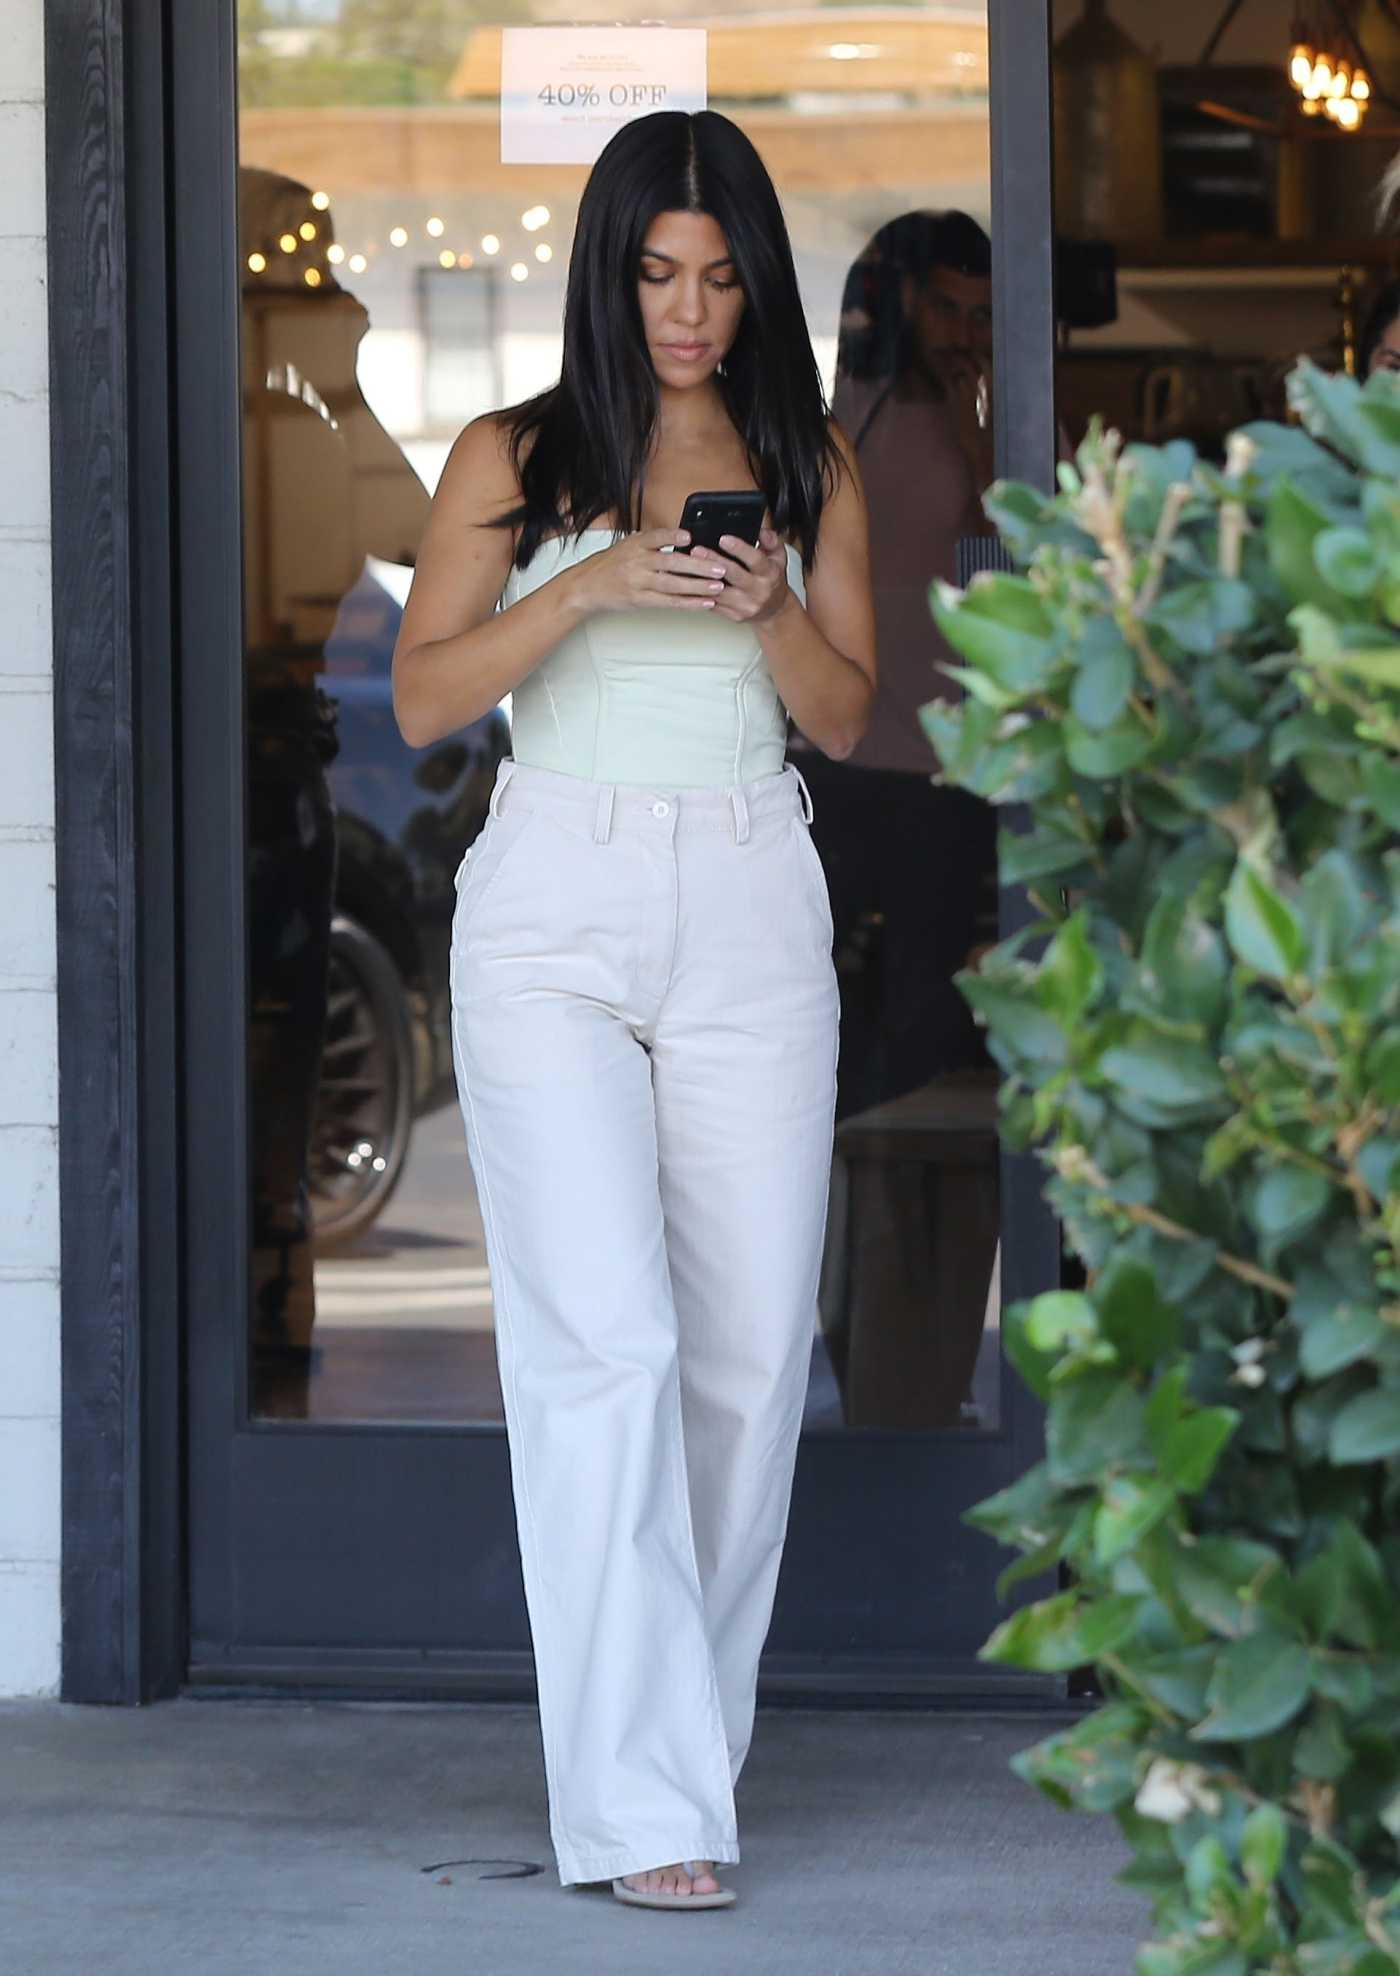 Kourtney Kardashian in a White Pants Was Seen Out in Calabasas 09/28/2019